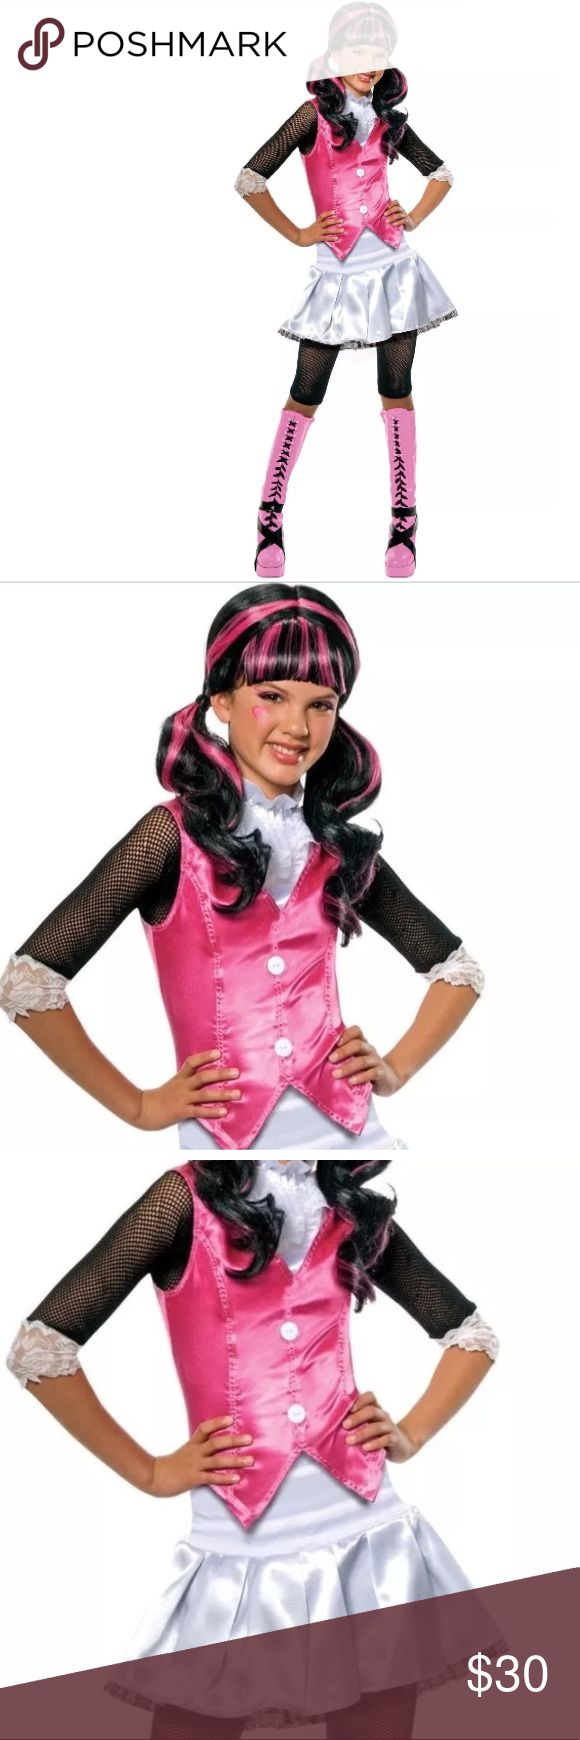 Draculaura Monster High Girls Halloween Costume Draculaura Monster High Girls Fancy Dress Halloween Costume New    Includes:  • Shirt with attached vest • Skirt • Leggings • Wig    Size Small 4-6 Height: 44-48 in Waist: 25-26 in   Size Medium 8-10 Height: 50-54 in Waist: 27-30 in   Size Large 12-14 Height: 56-60 in Waist: 31-34 in Costumes Halloween